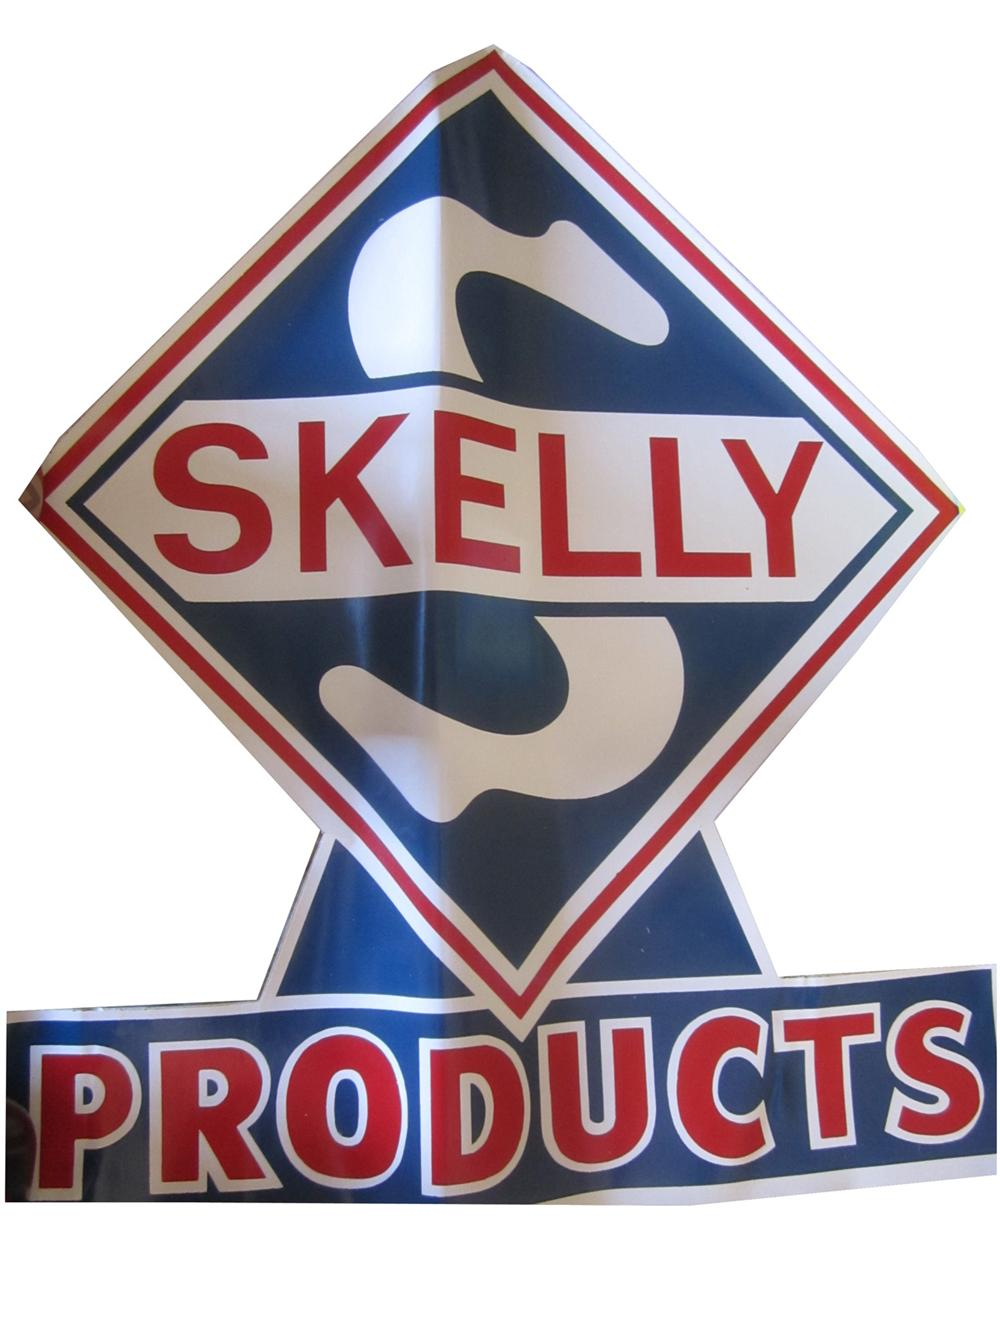 N.O.S. Skelly Oil Products decal in pristine condition. - Front 3/4 - 130812